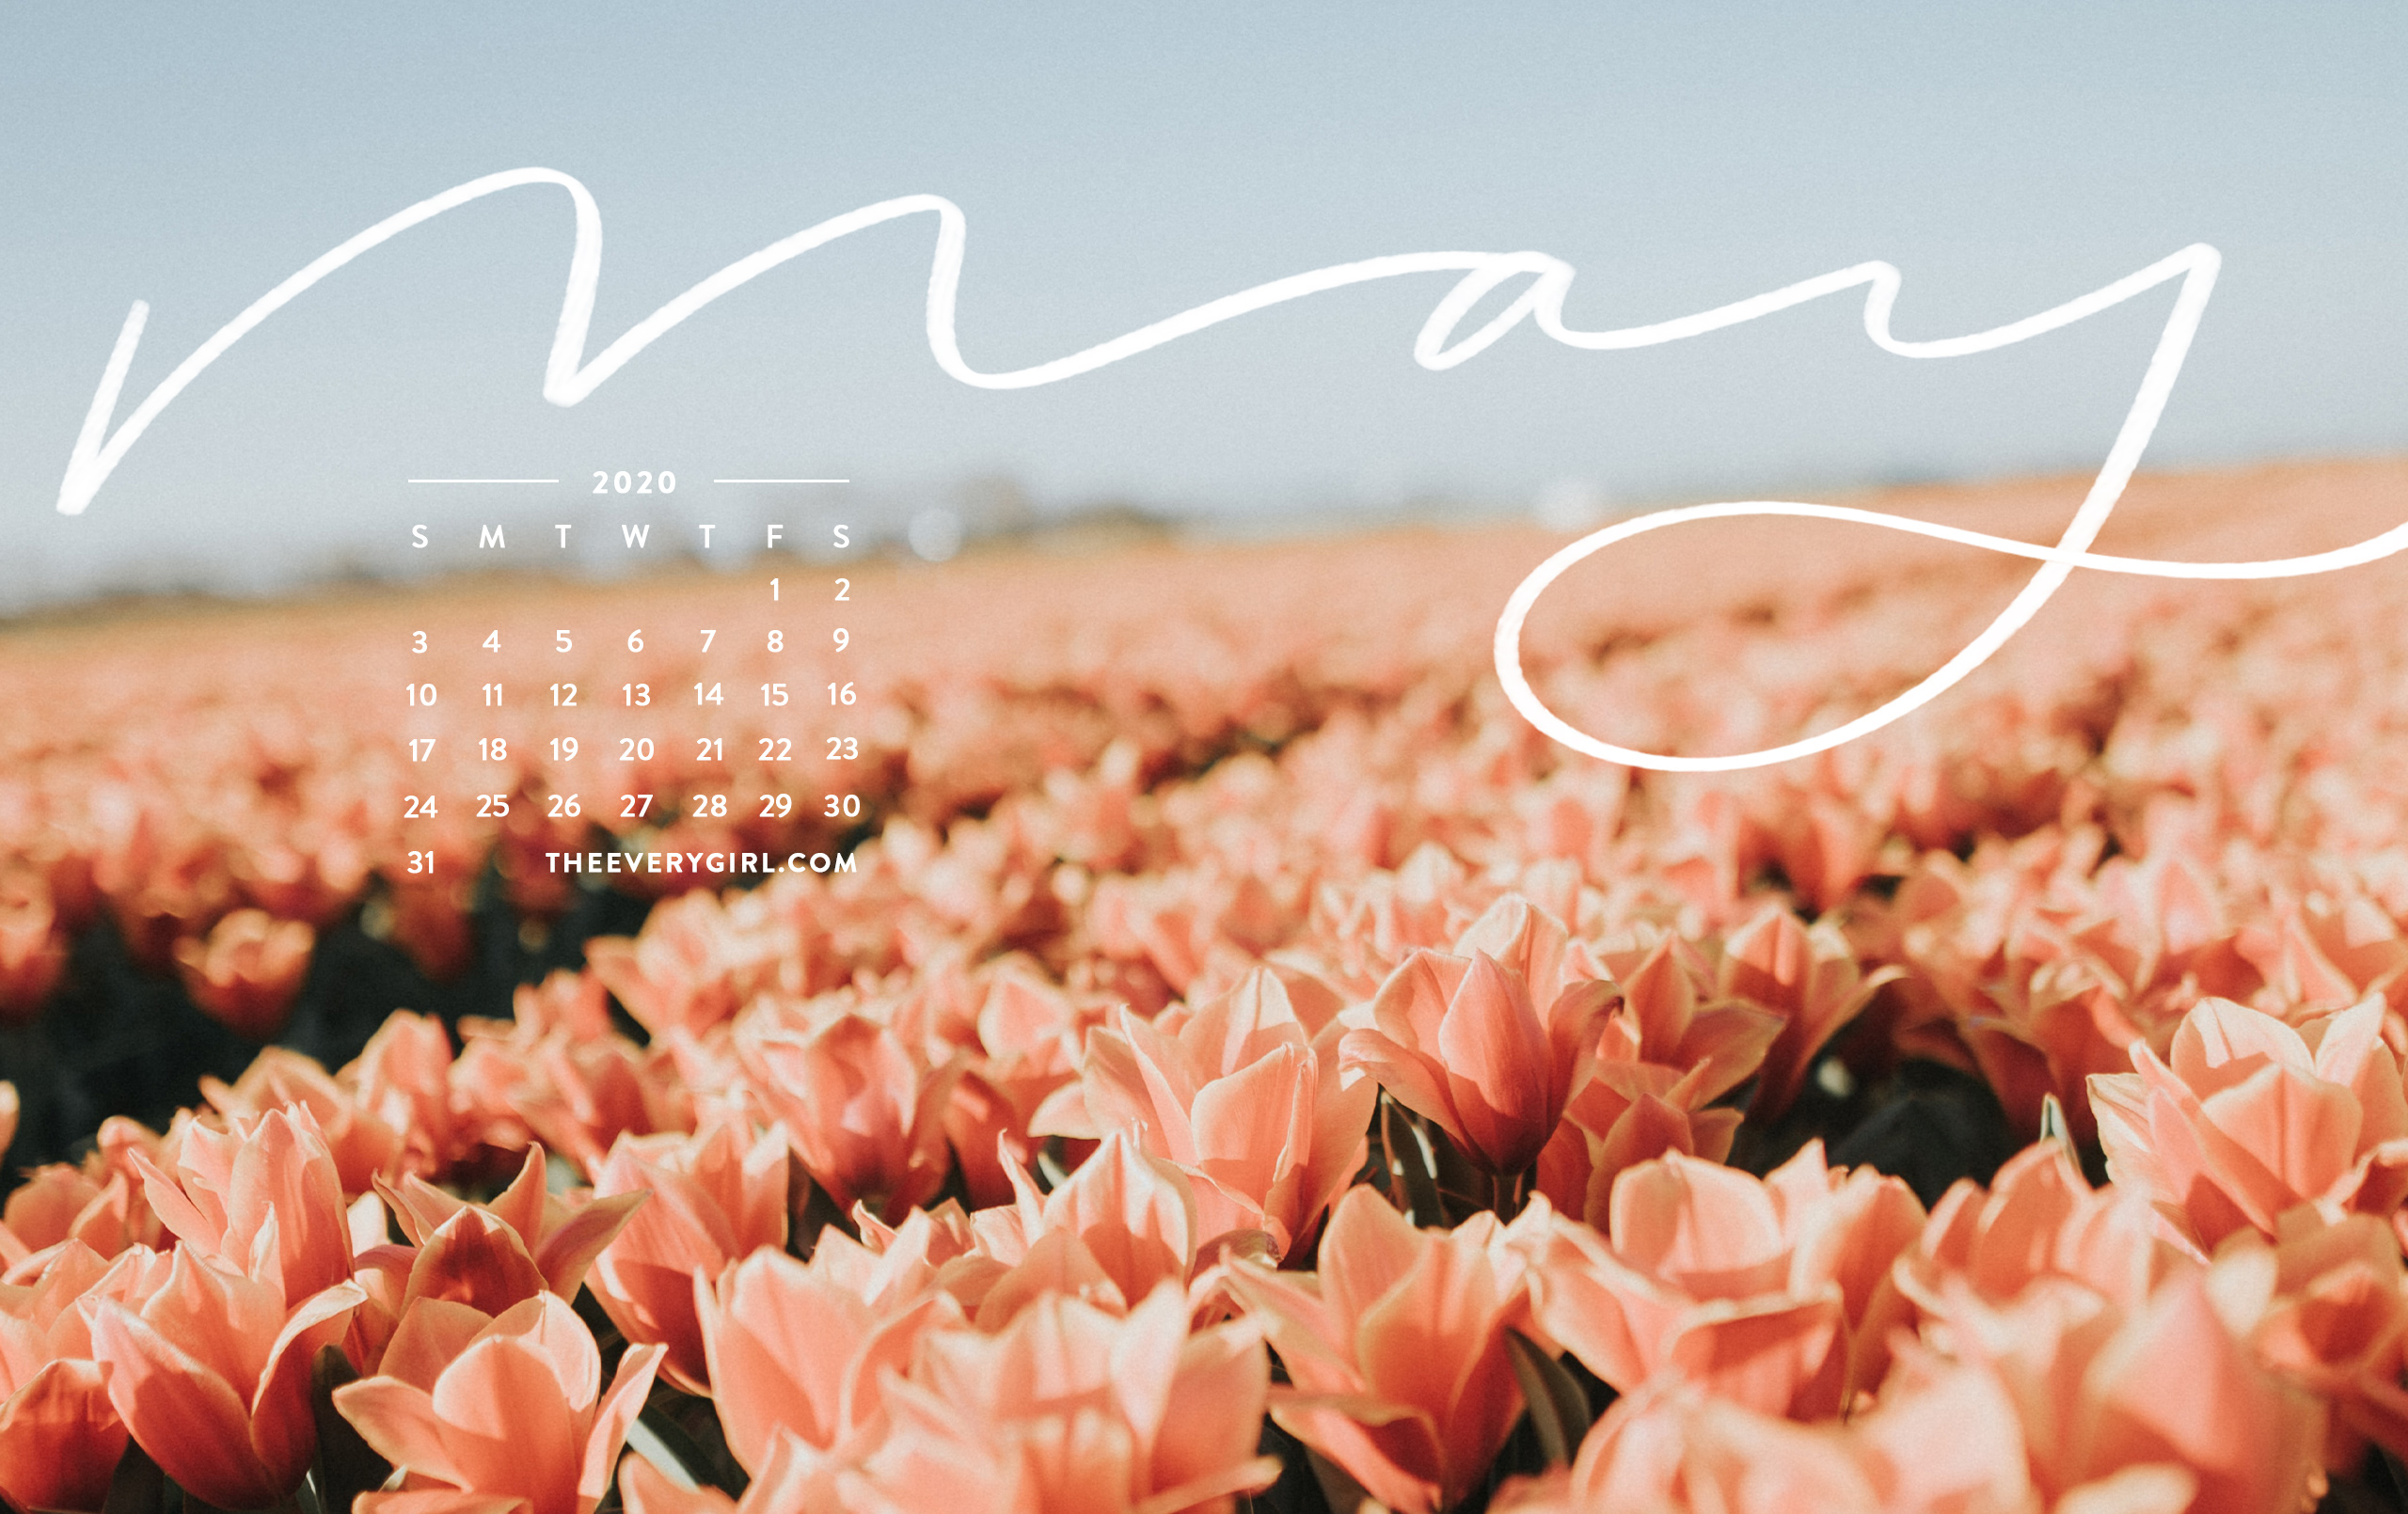 Free Downloadable Tech Backgrounds For May 2020 The Everygirl